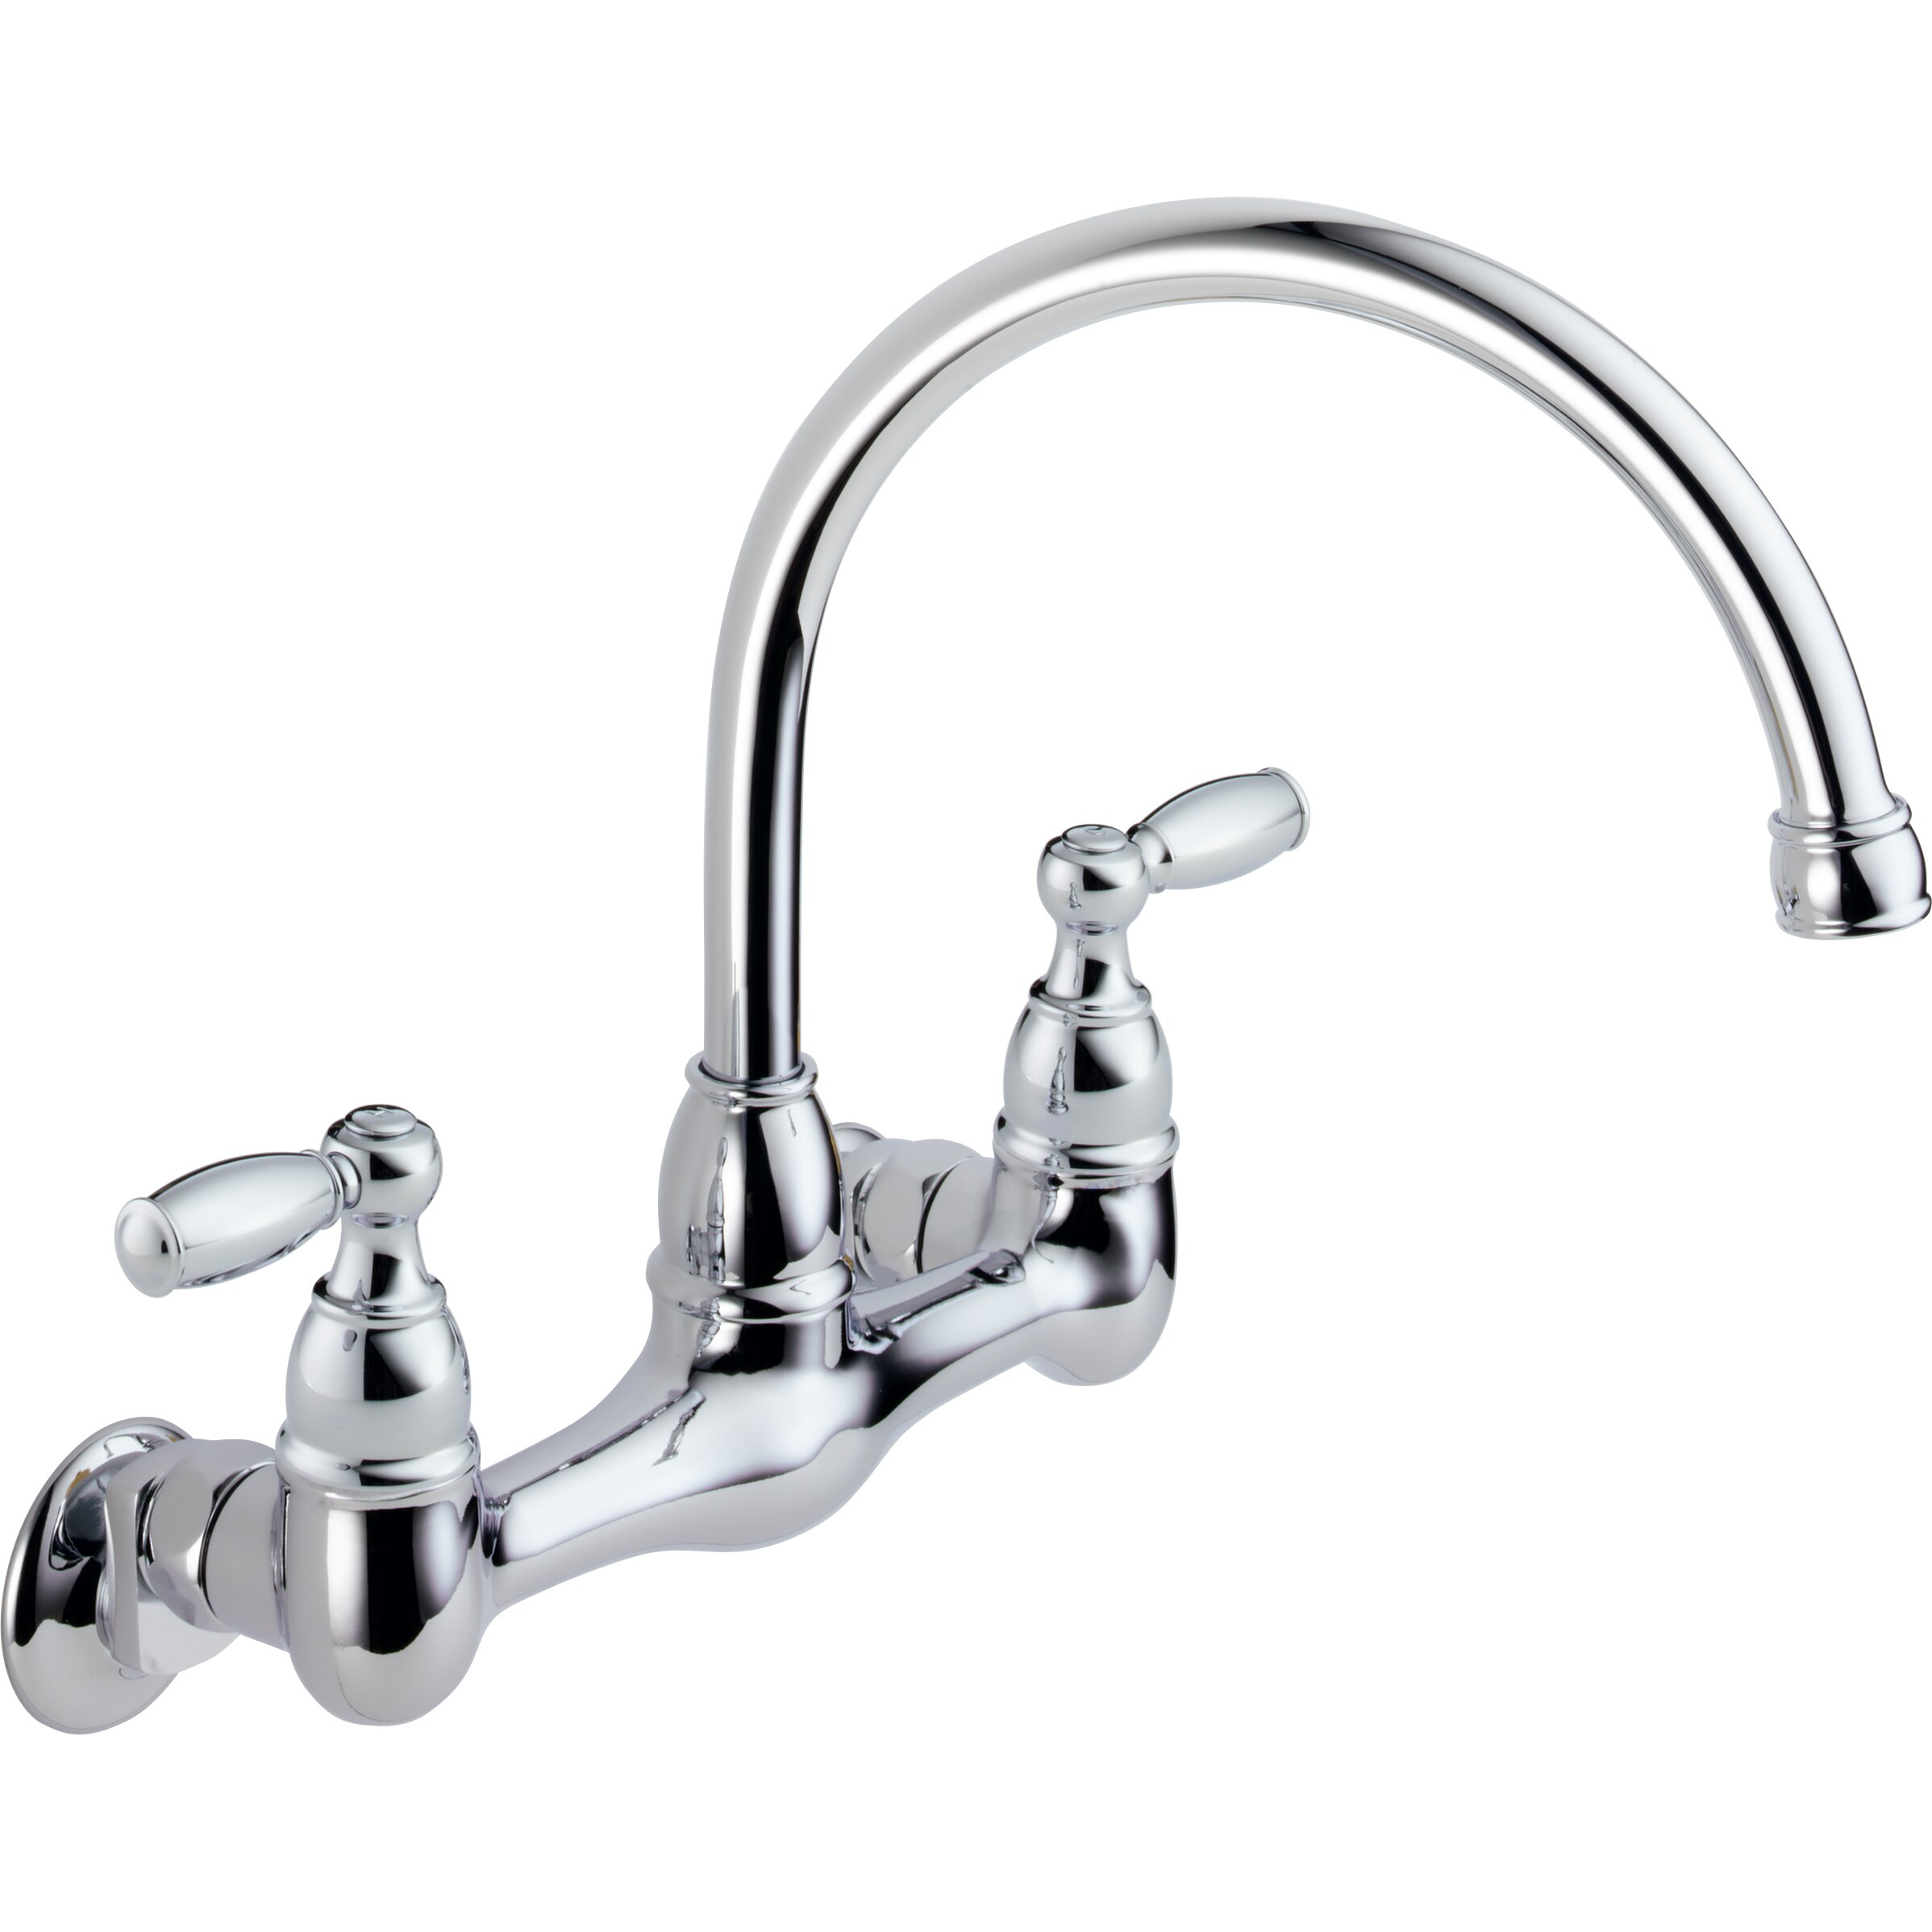 Peerless Kitchen Faucets: Peerless Faucets Two Handle Wall Mounted Kitchen Faucet